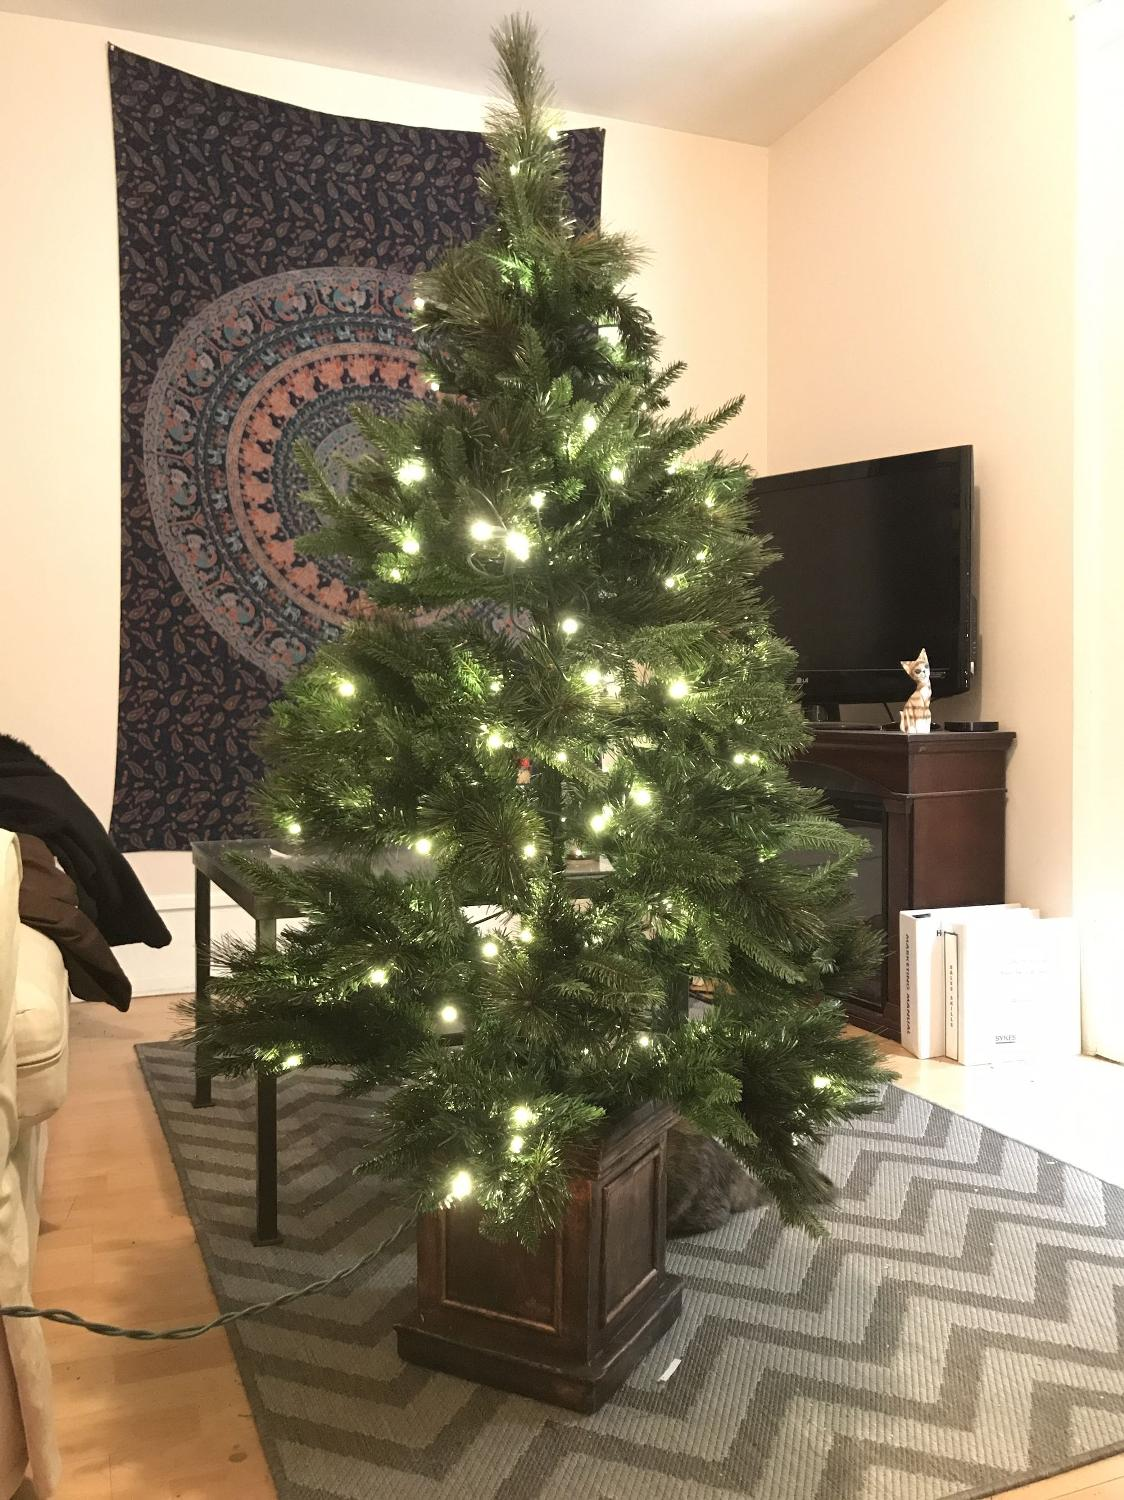 Best 5 Ft Prelit Christmas Tree for sale in Montral Quebec for 2017